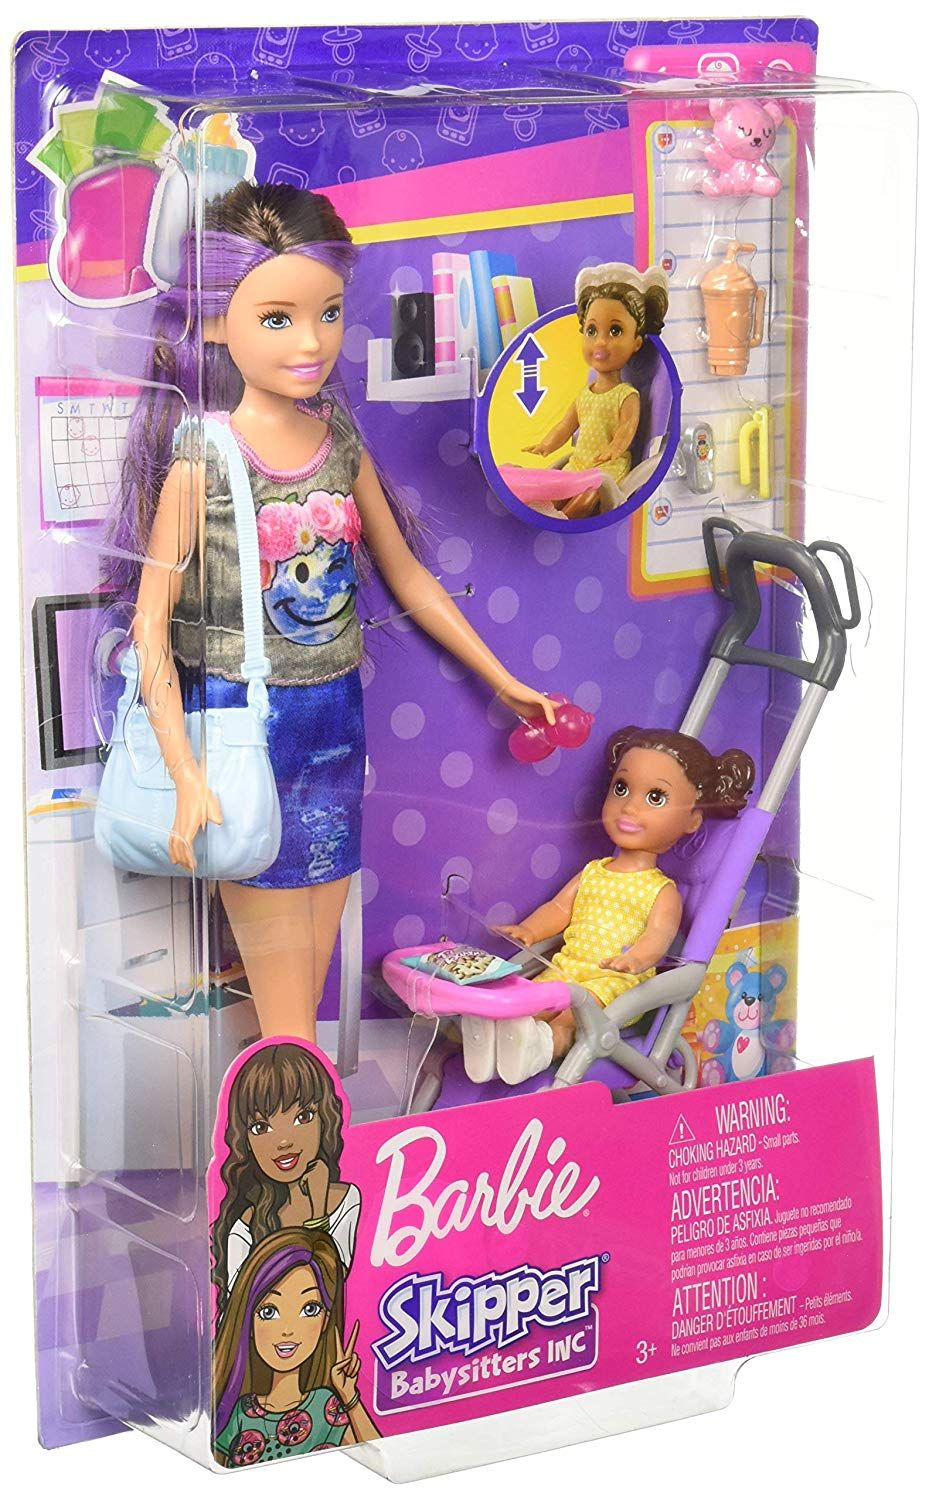 Skipper Babysitters Inc. playset with a babysitter doll, a